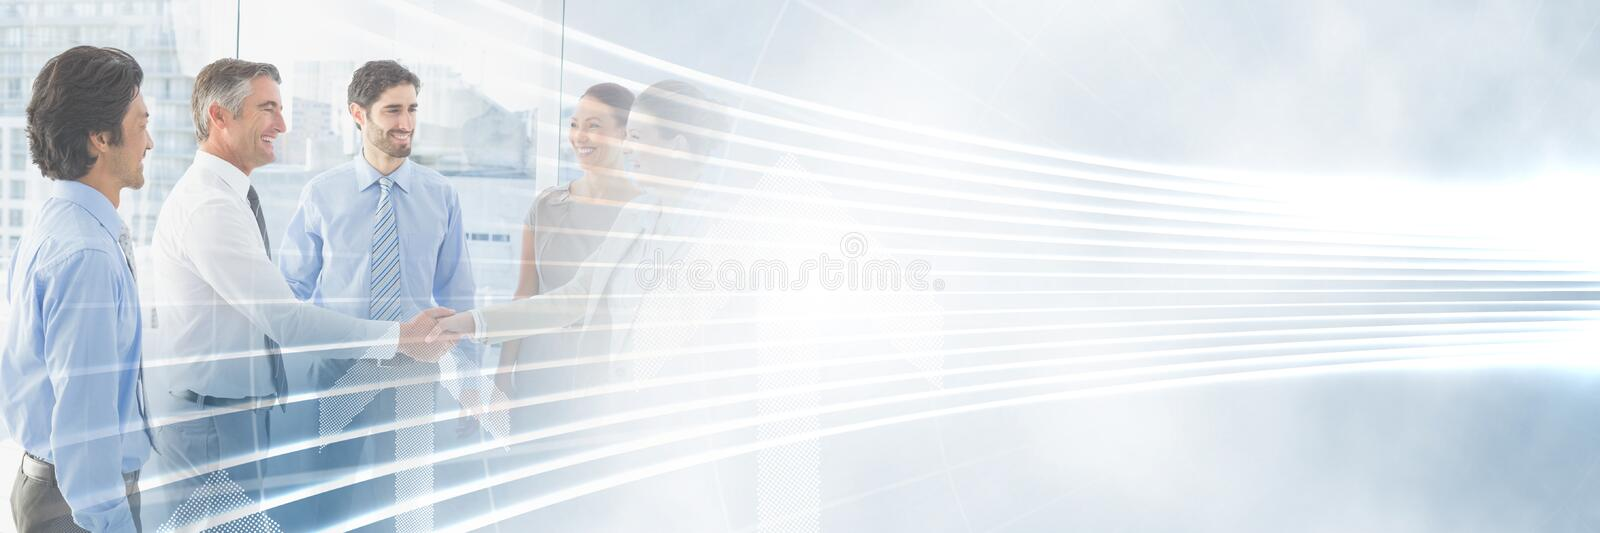 Business people having a meeting with illuminated curved lines transition effect royalty free stock image